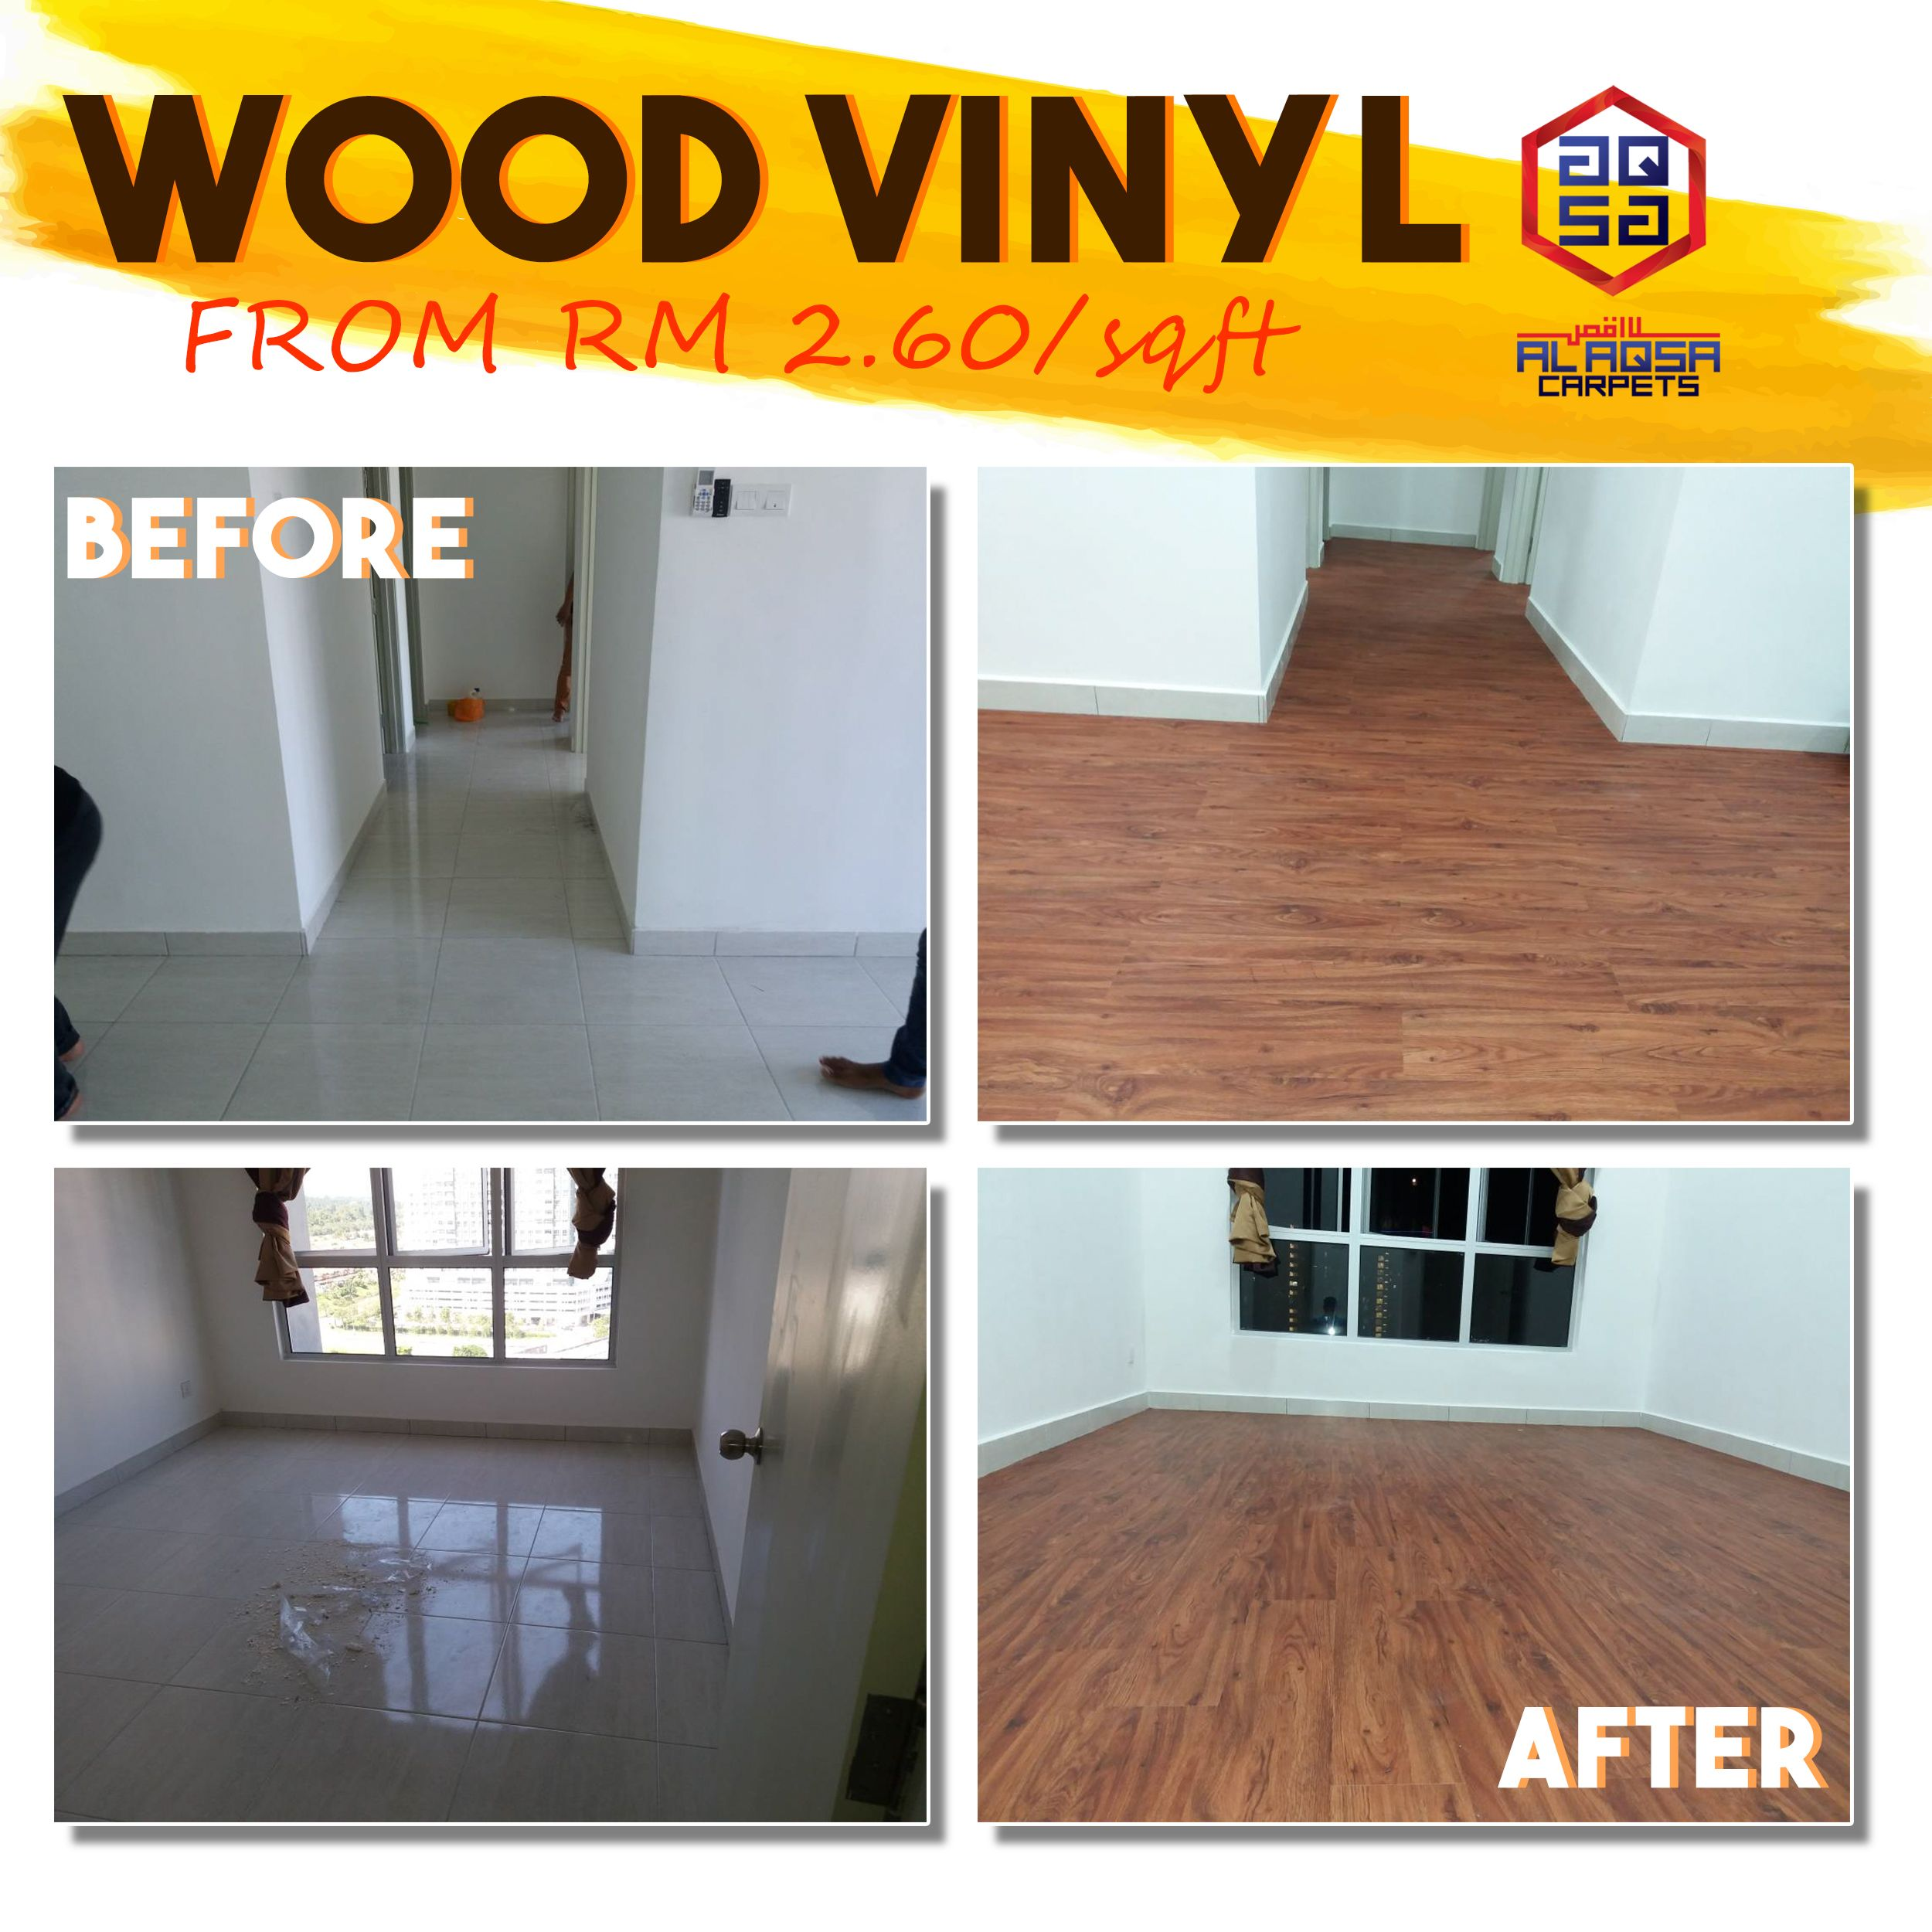 Creating A New Look For Your Room Is As Our Diy Wood Vinyl Flooring Luxurious Look For Low Expense Super Cheap Diy Wooden Vi Pvc Flooring Wood Vinyl Flooring